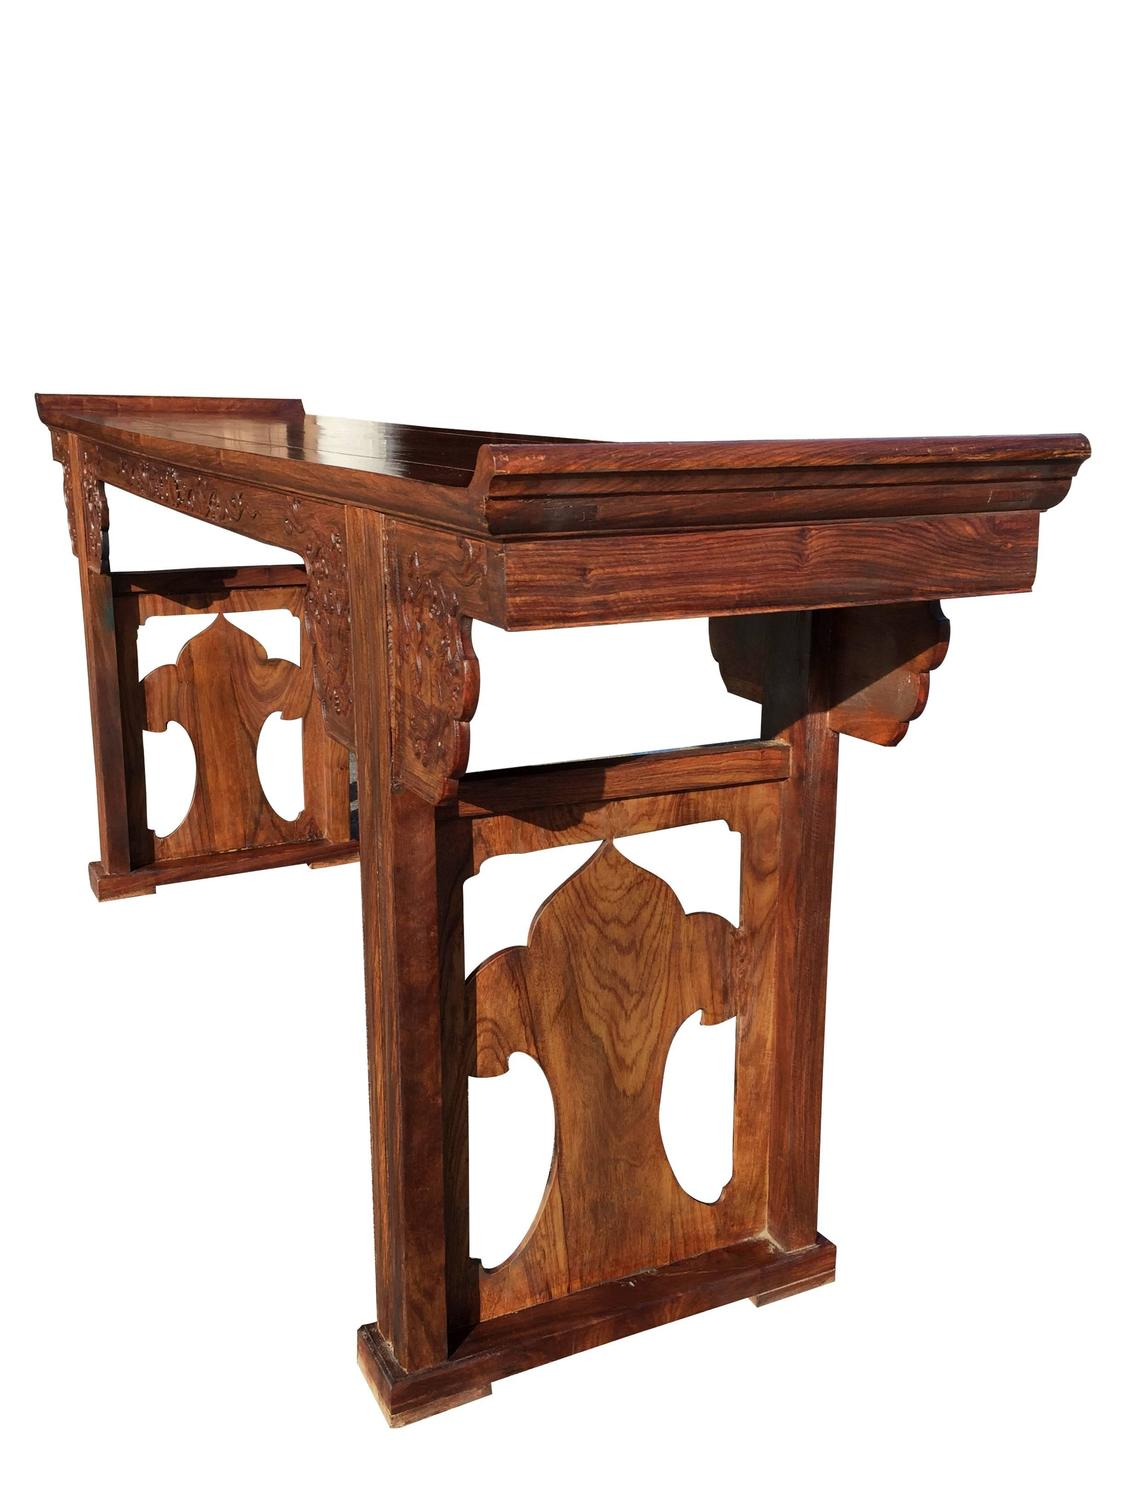 Fine chinese huanghuali wood altar table for sale at stdibs